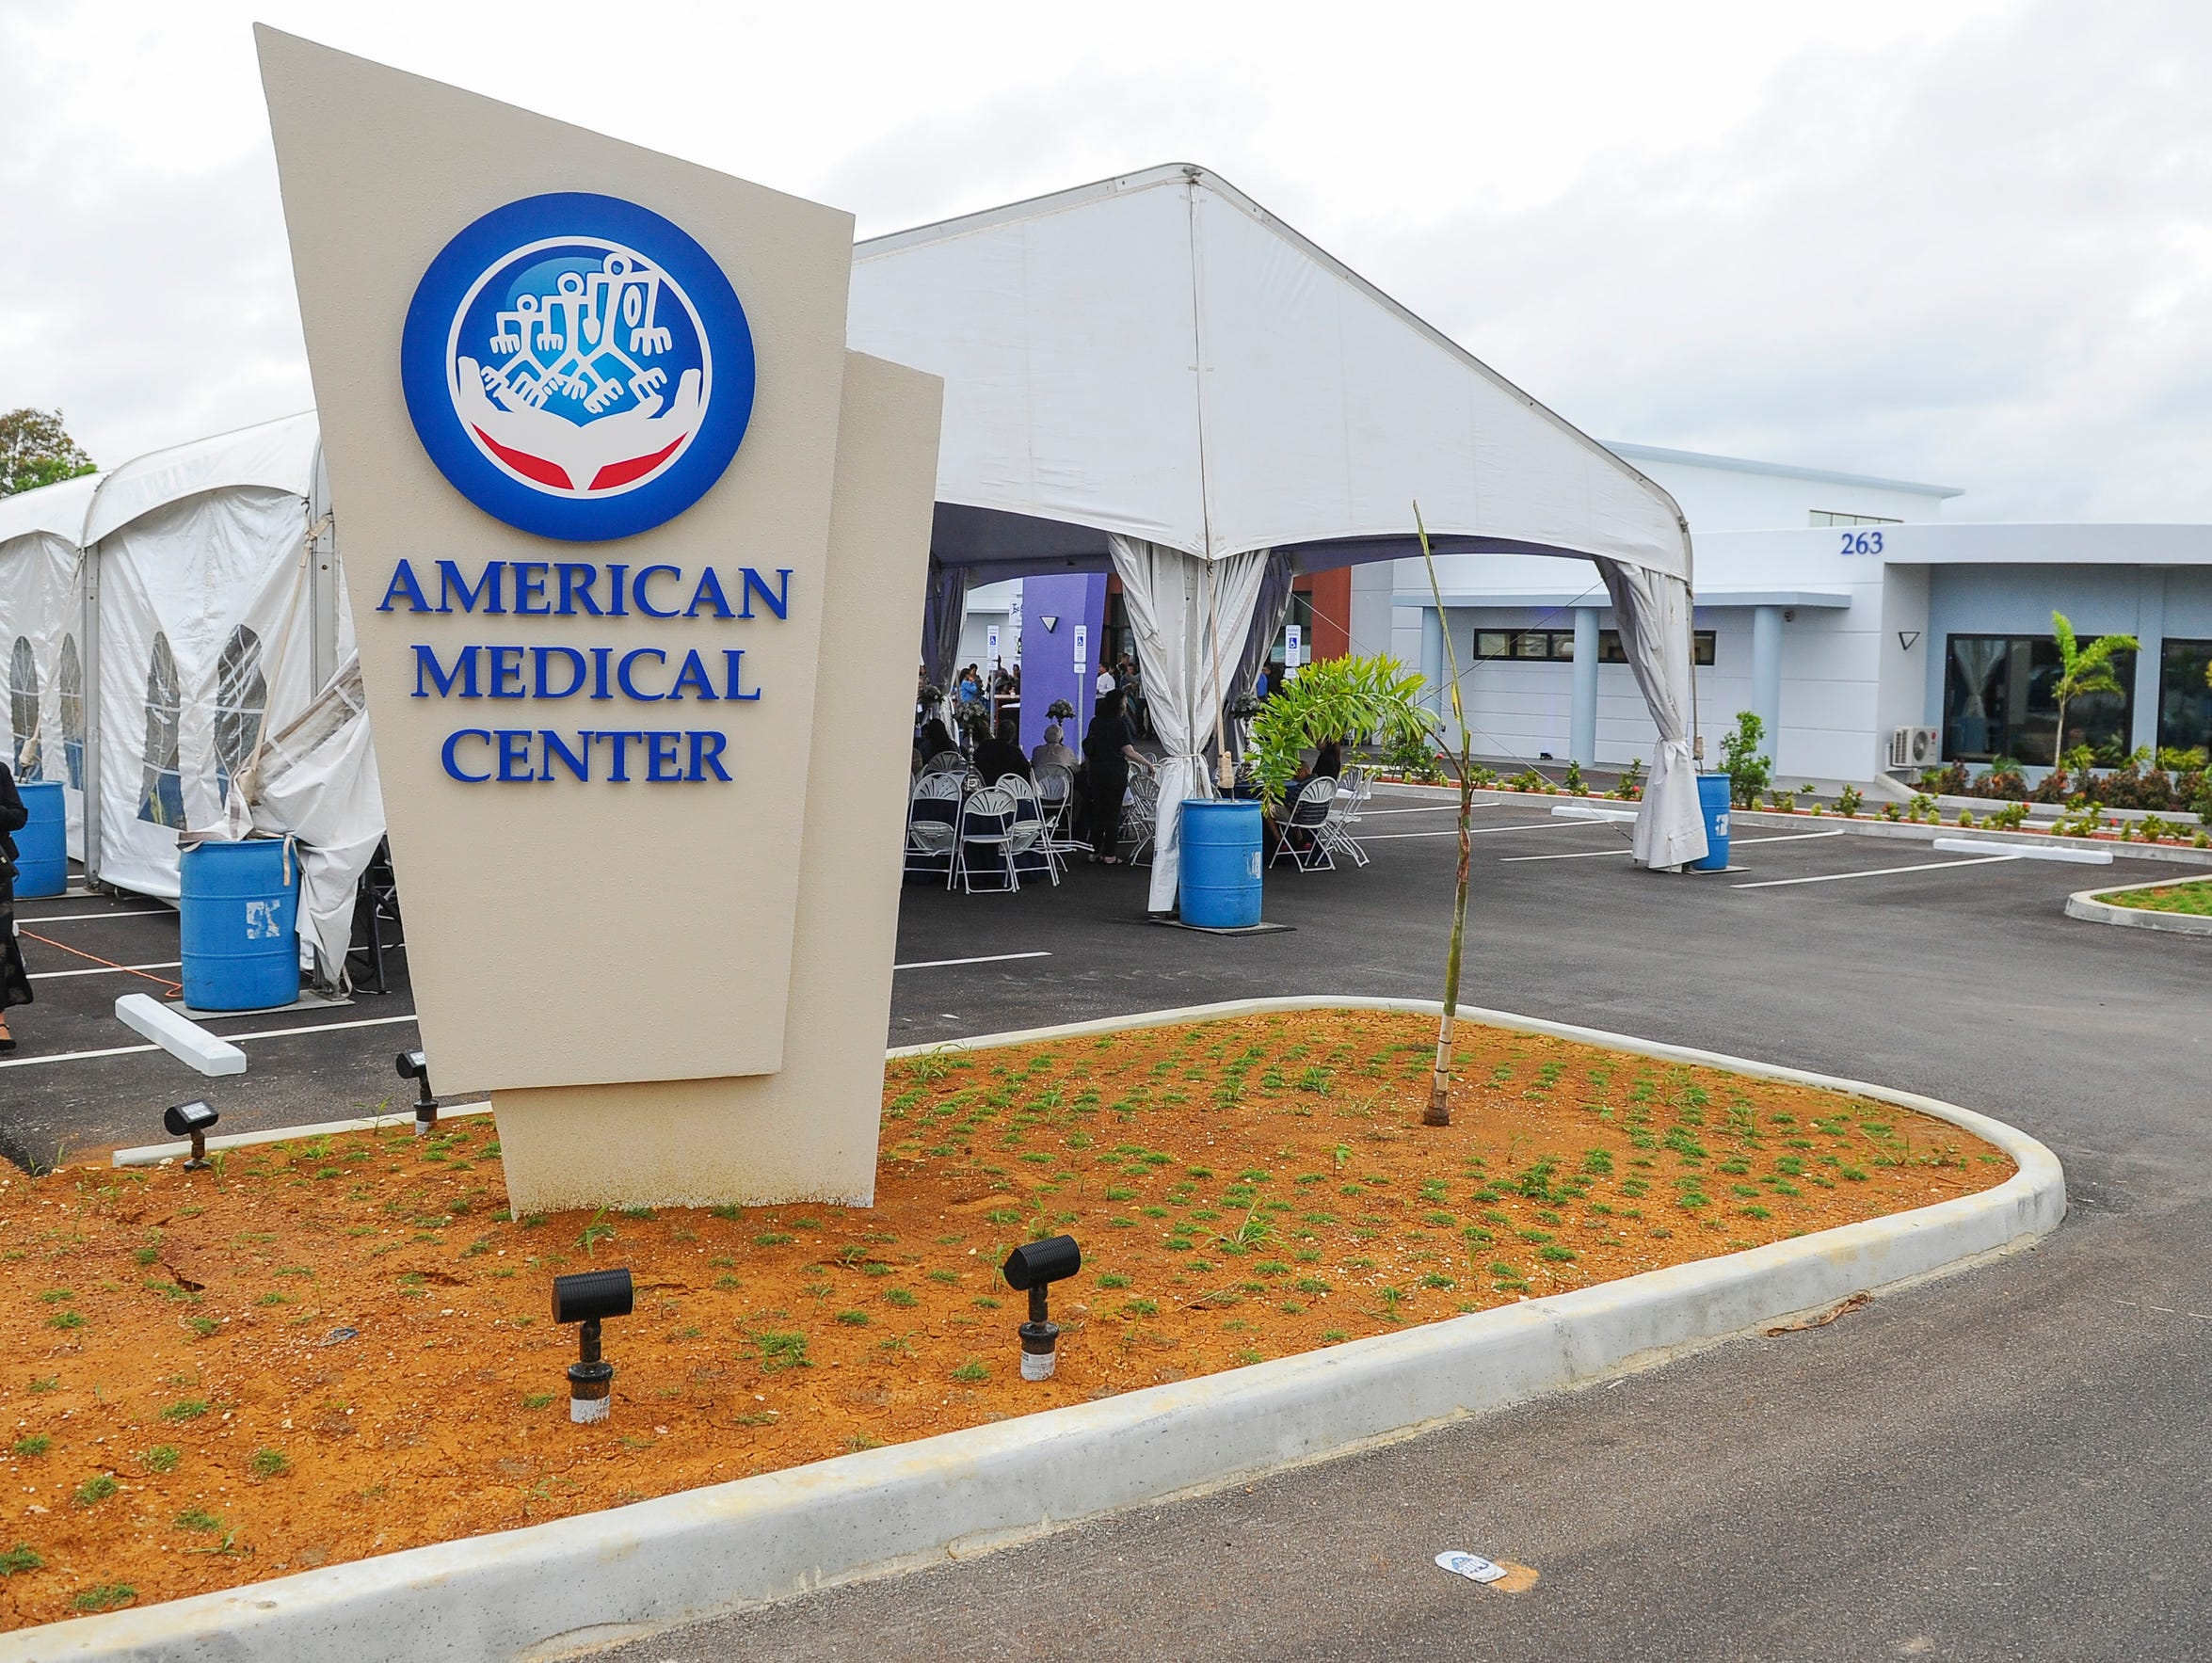 A grand opening celebration was held for American Medical